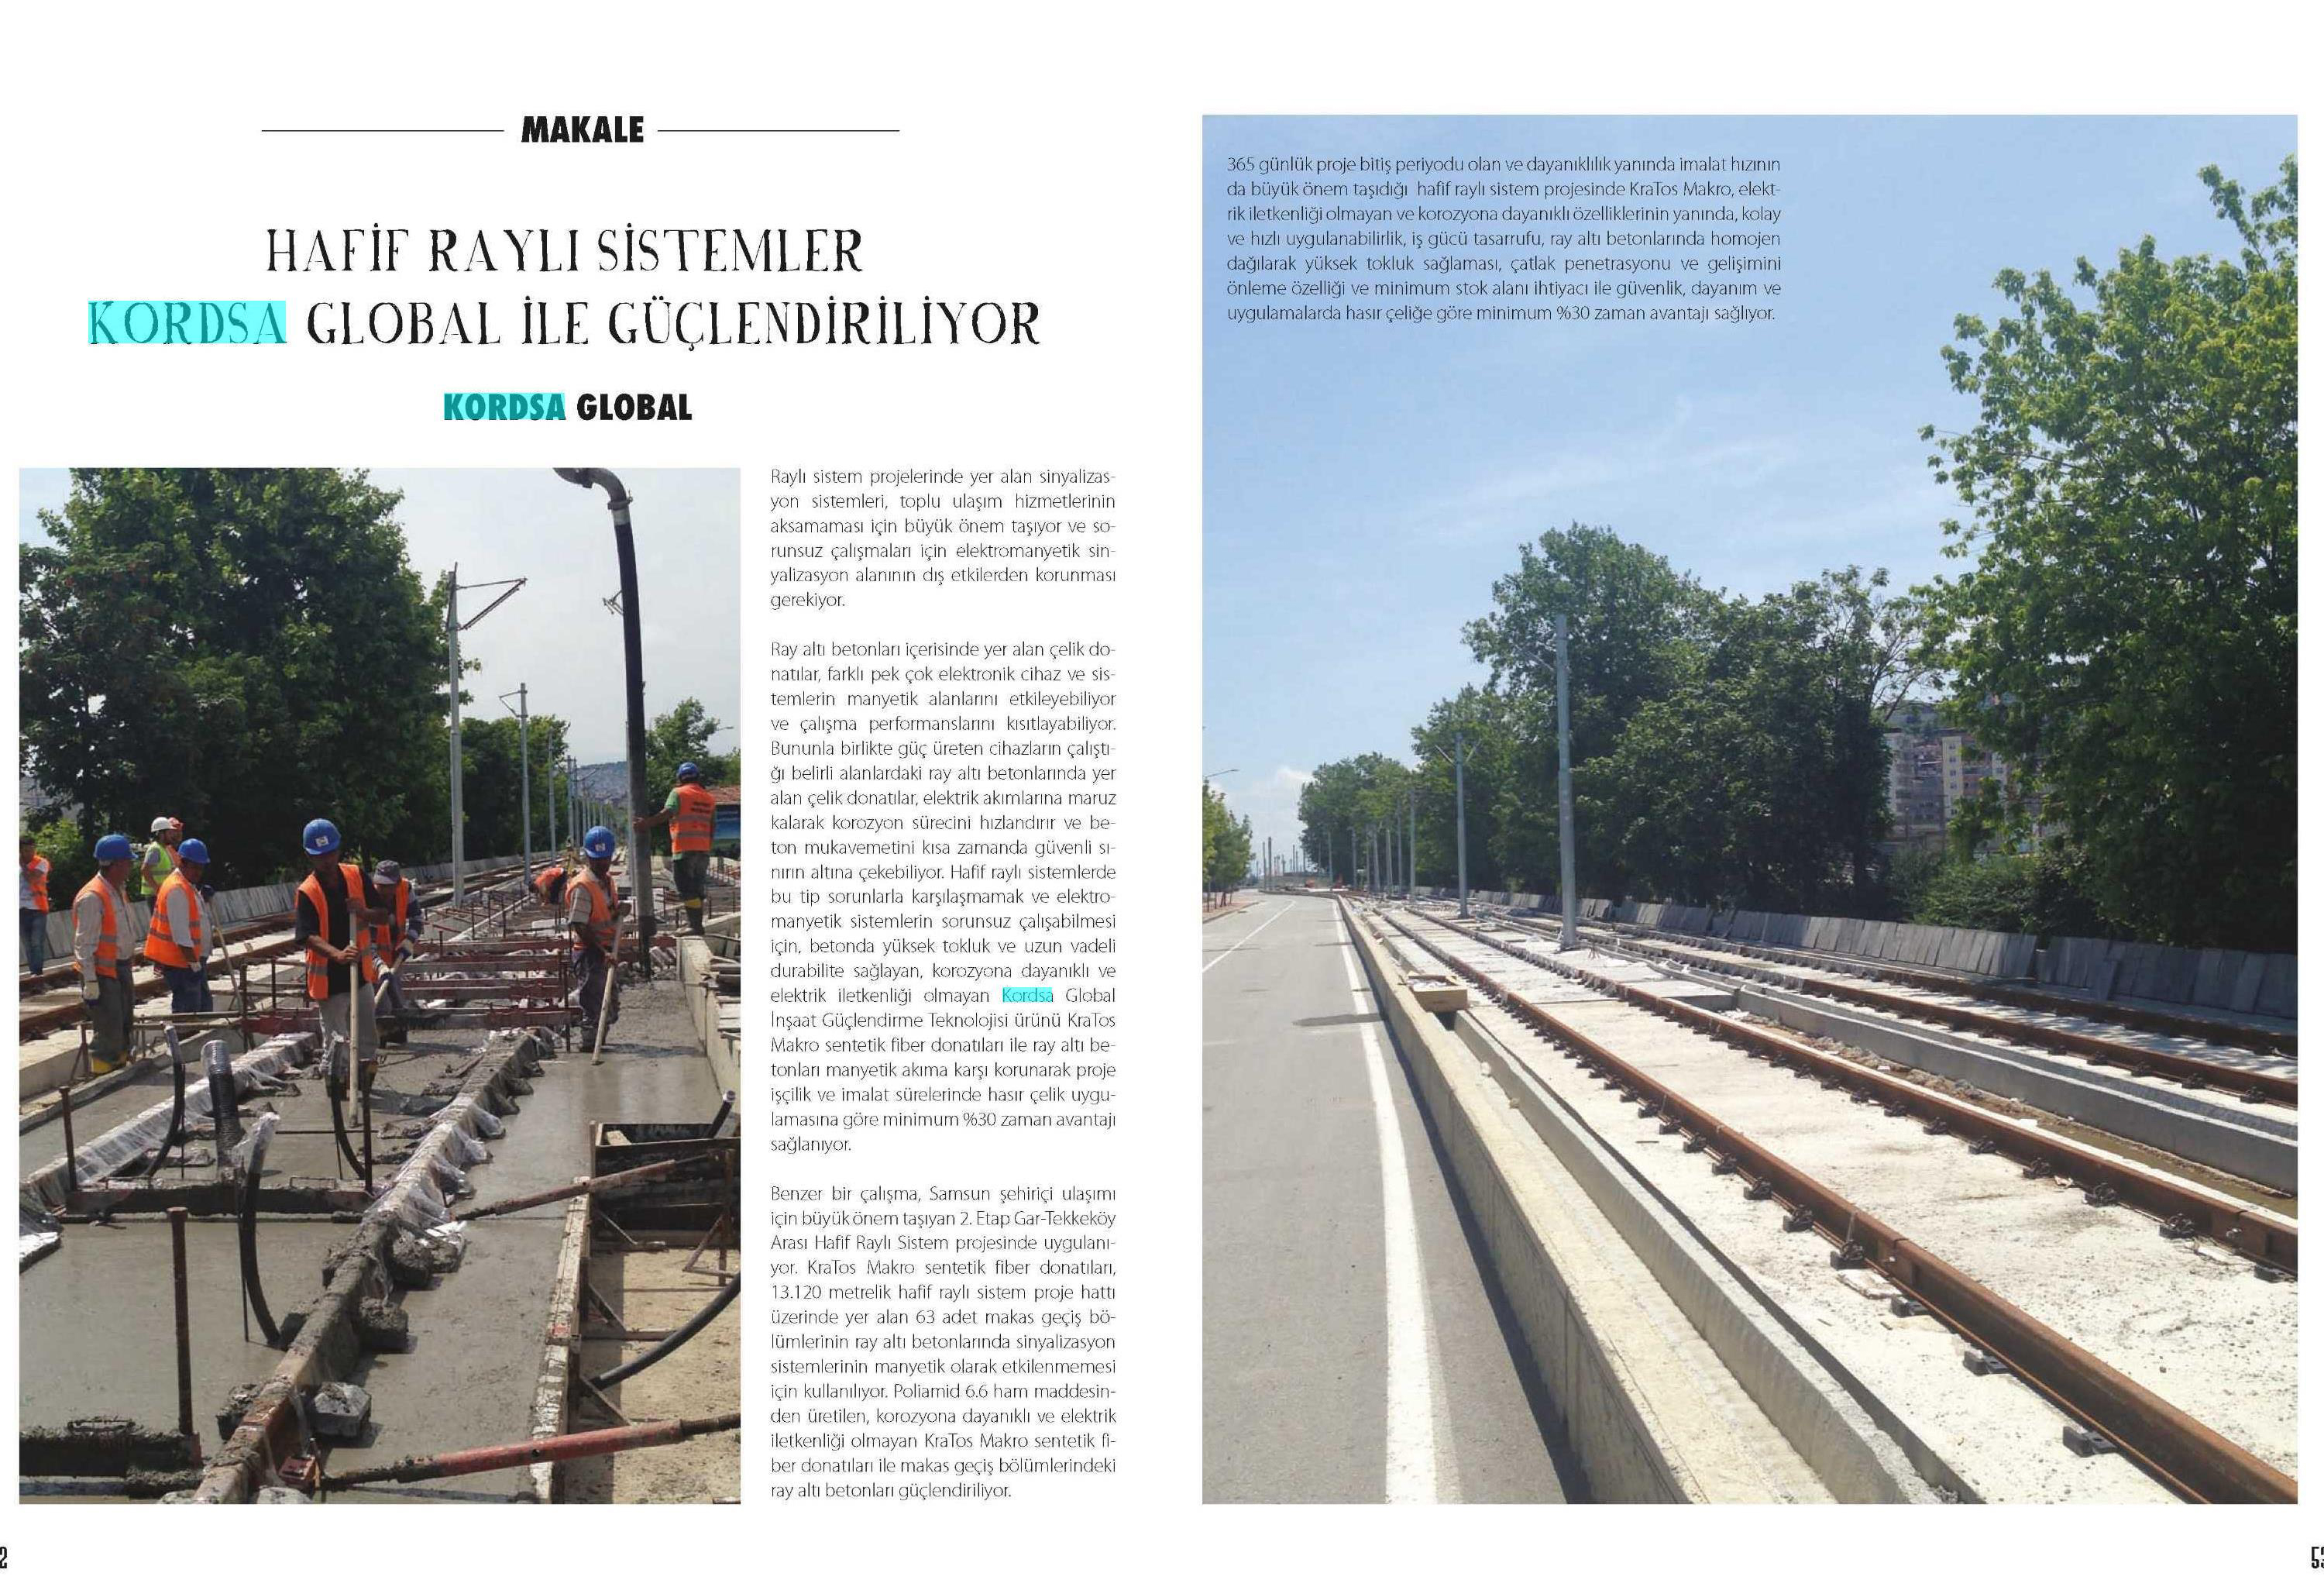 Light Rail Systems are being Reinforced by Kordsa Global